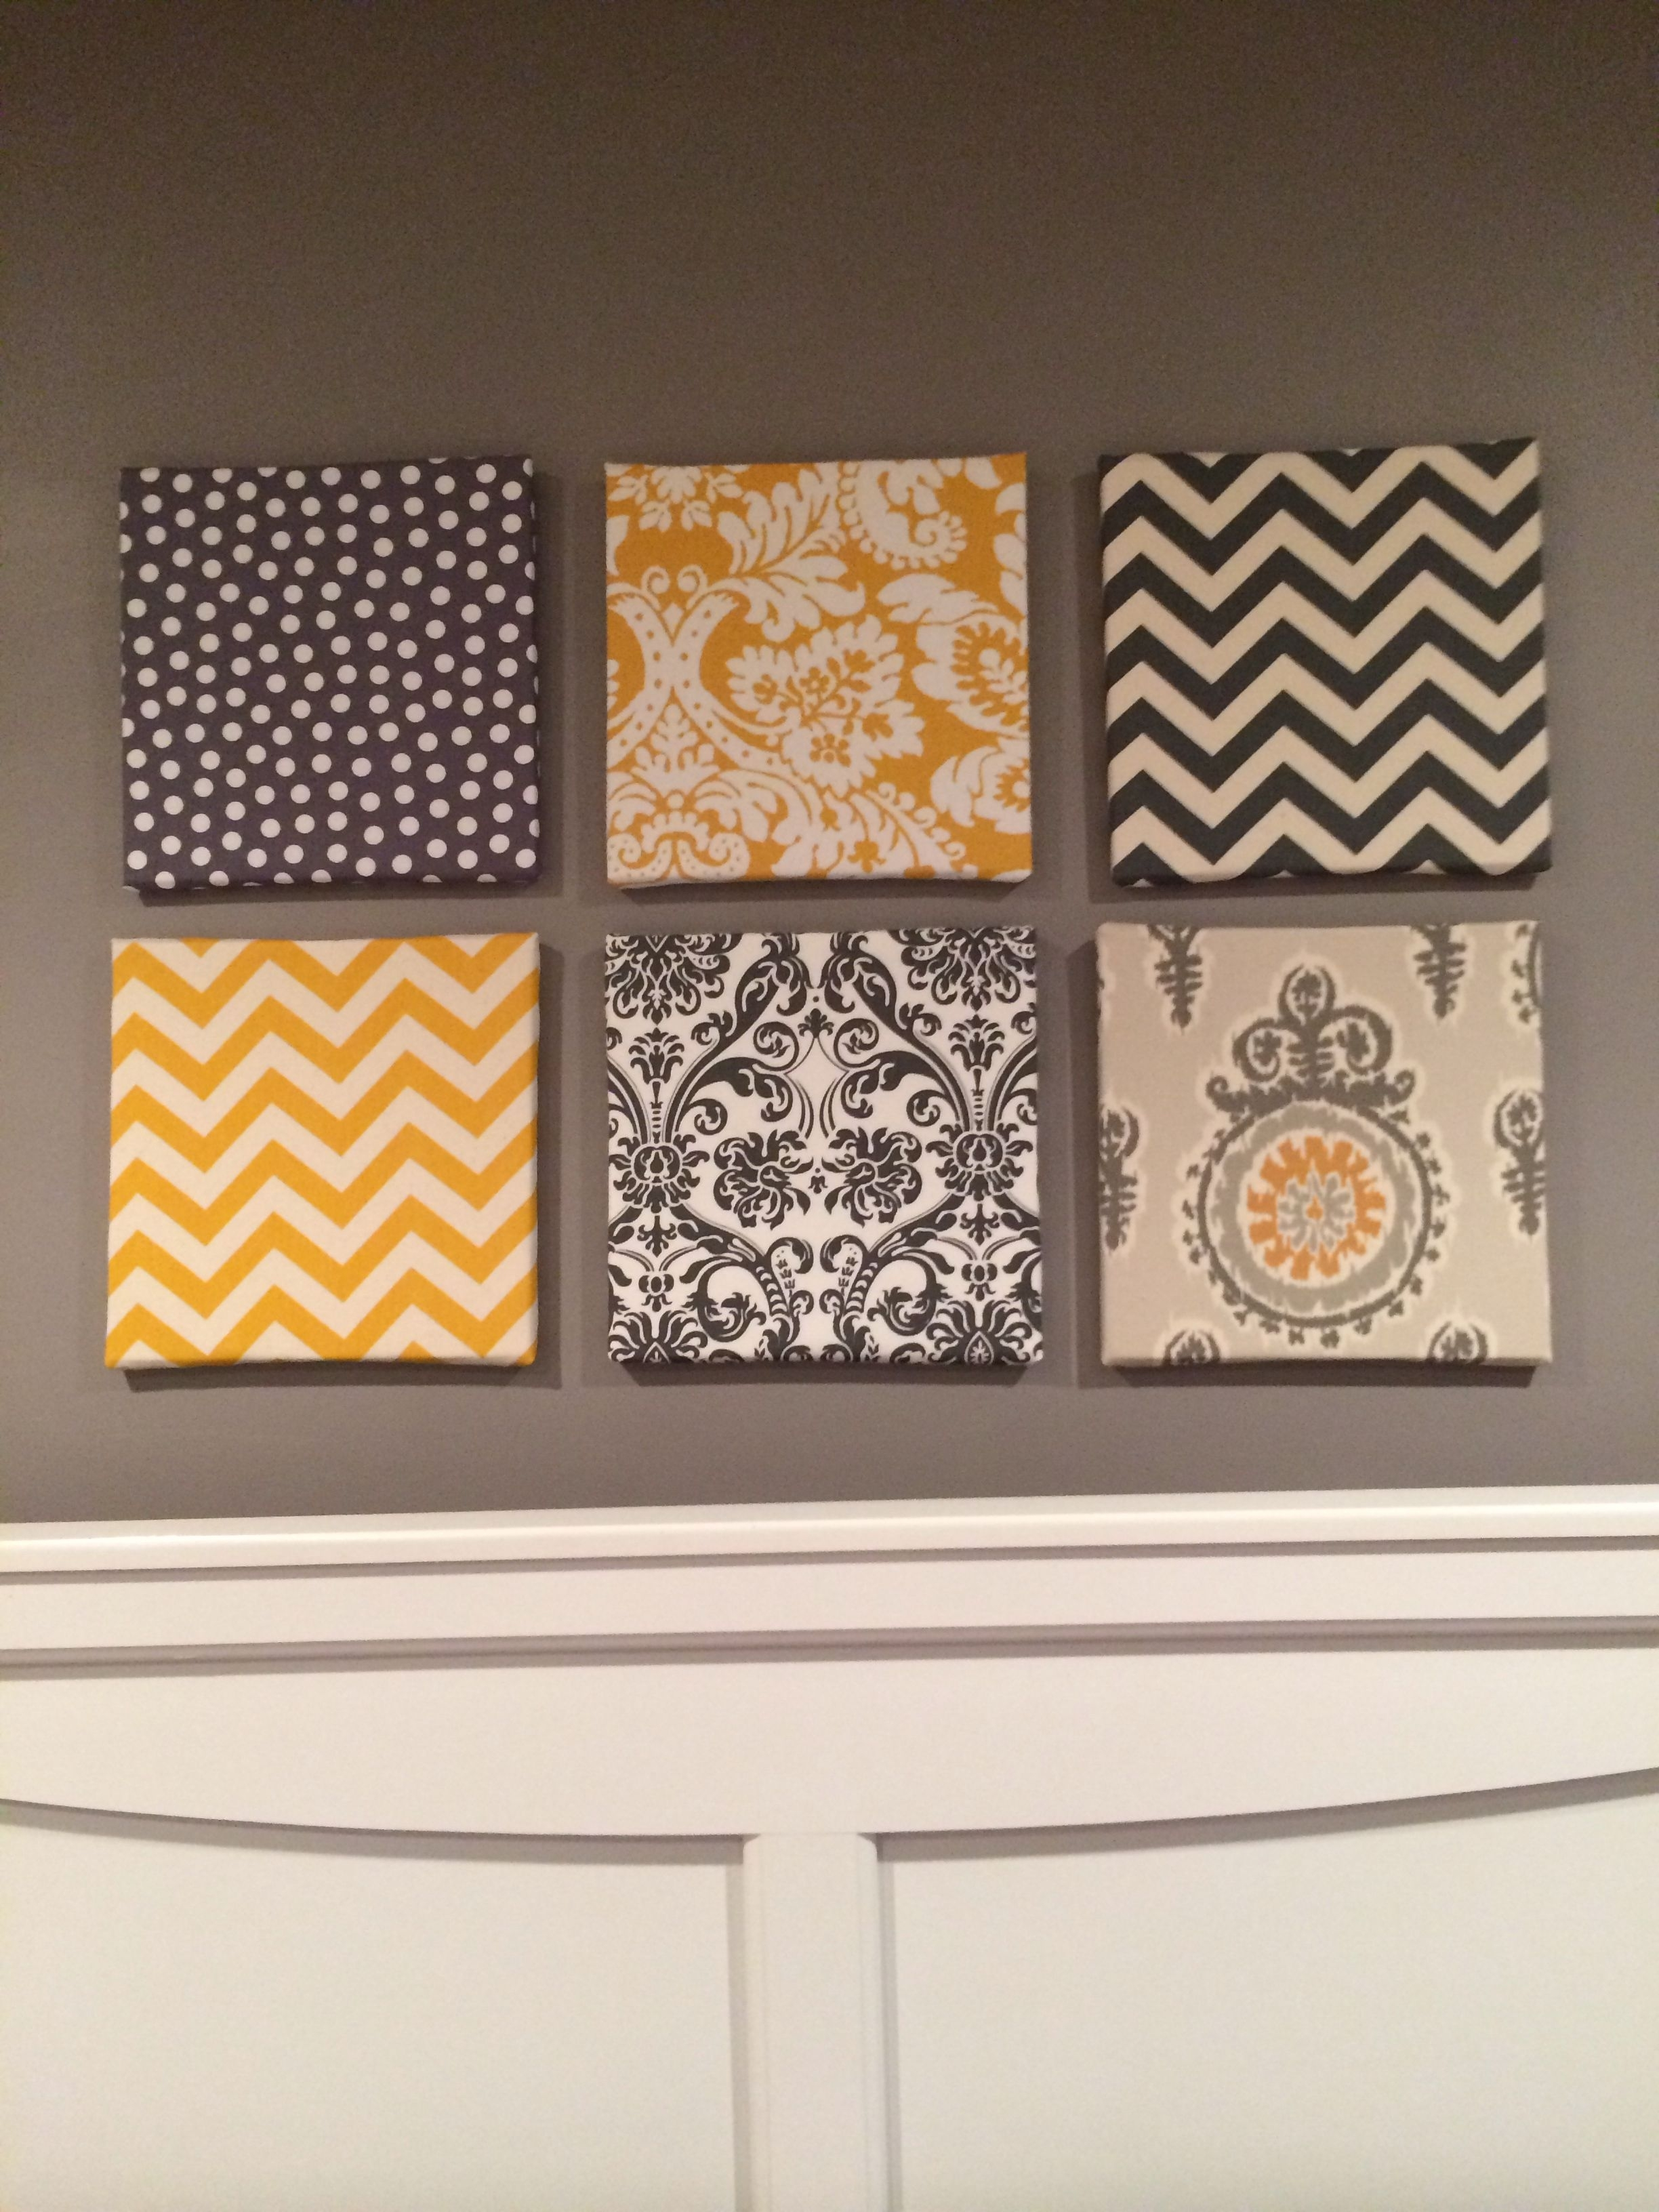 My Fabric Over Canvas Wall Art For My Gray And Yellow Themed Room For Recent Yellow Wall Art (View 18 of 20)